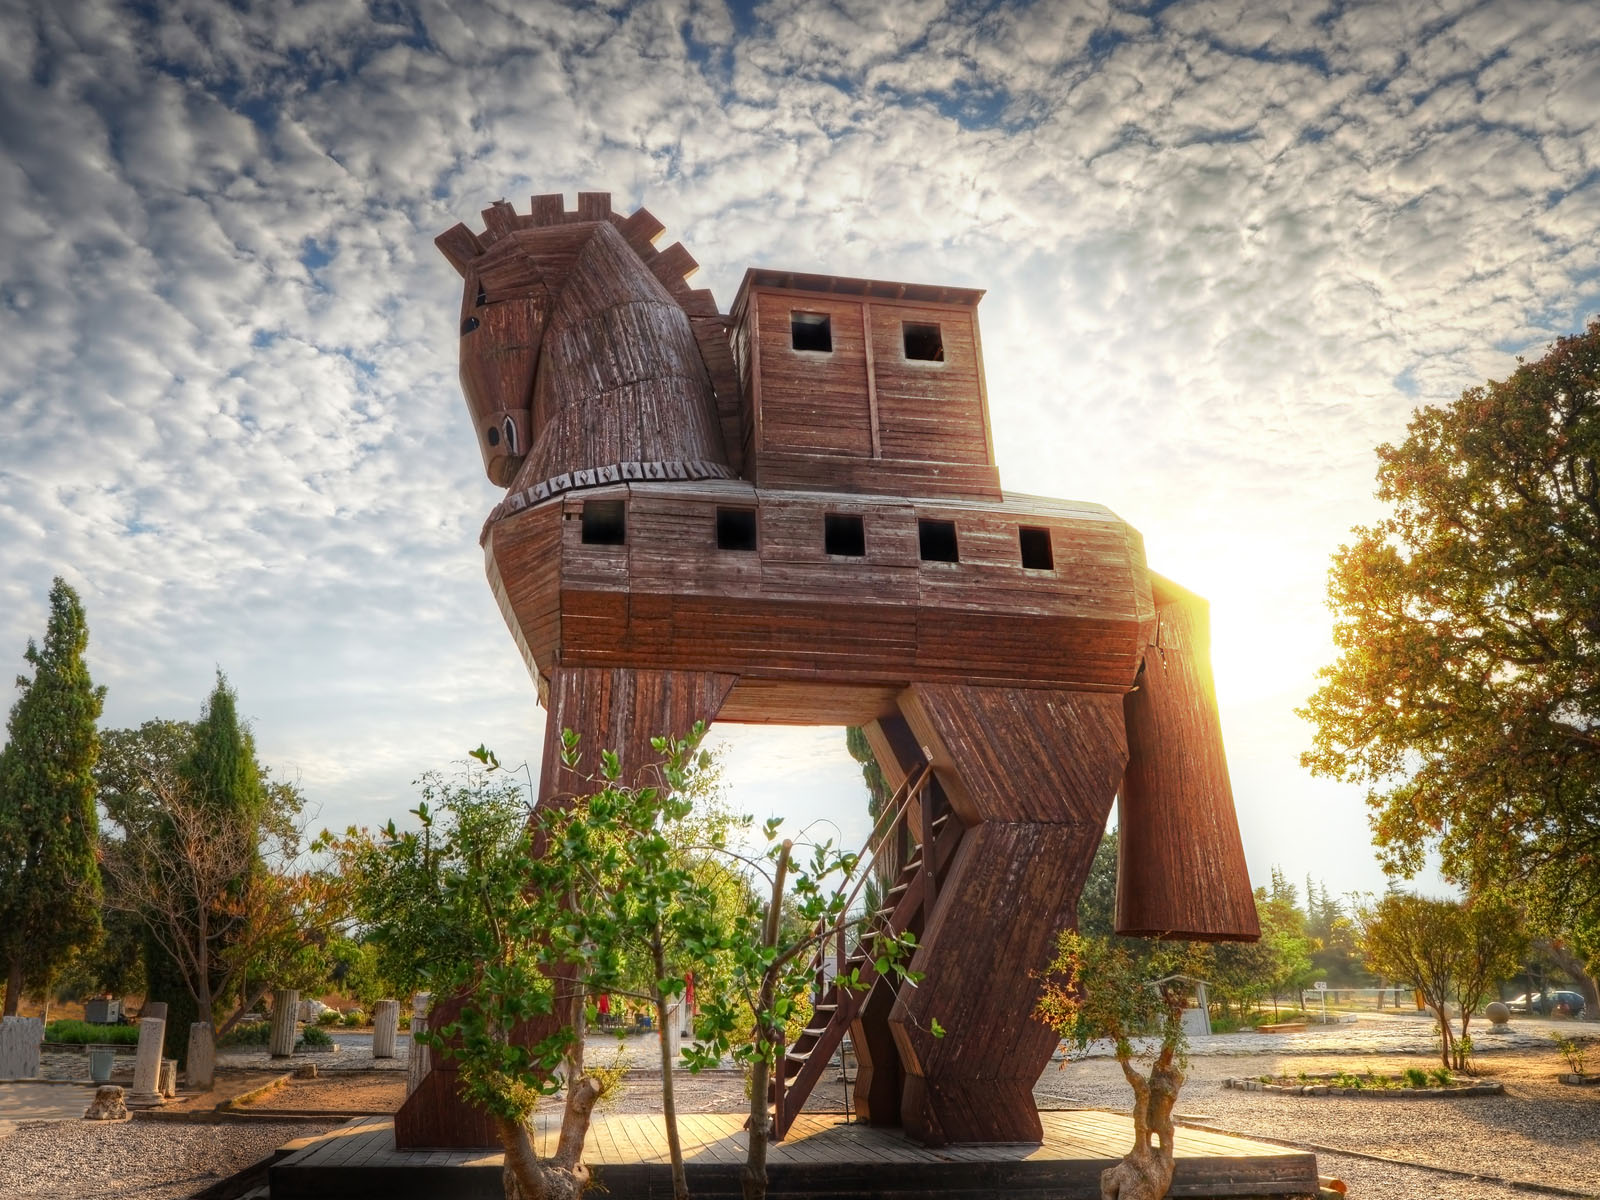 A reconstruction of The Trojan Horse at the site of Troy